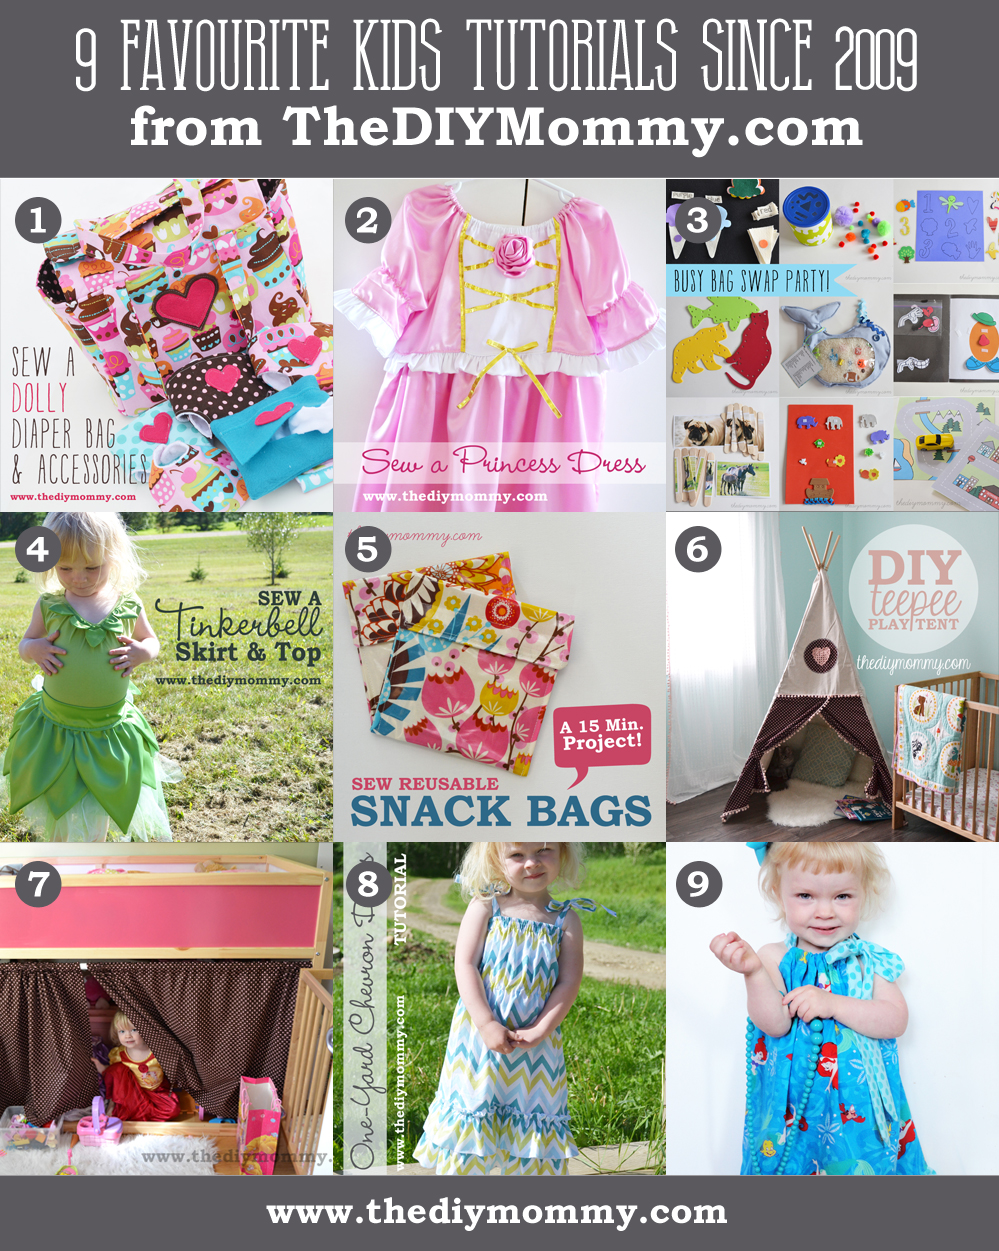 The 9 Favourite DIY Kid's Tutorials on The DIY Mommy from 2009-2014